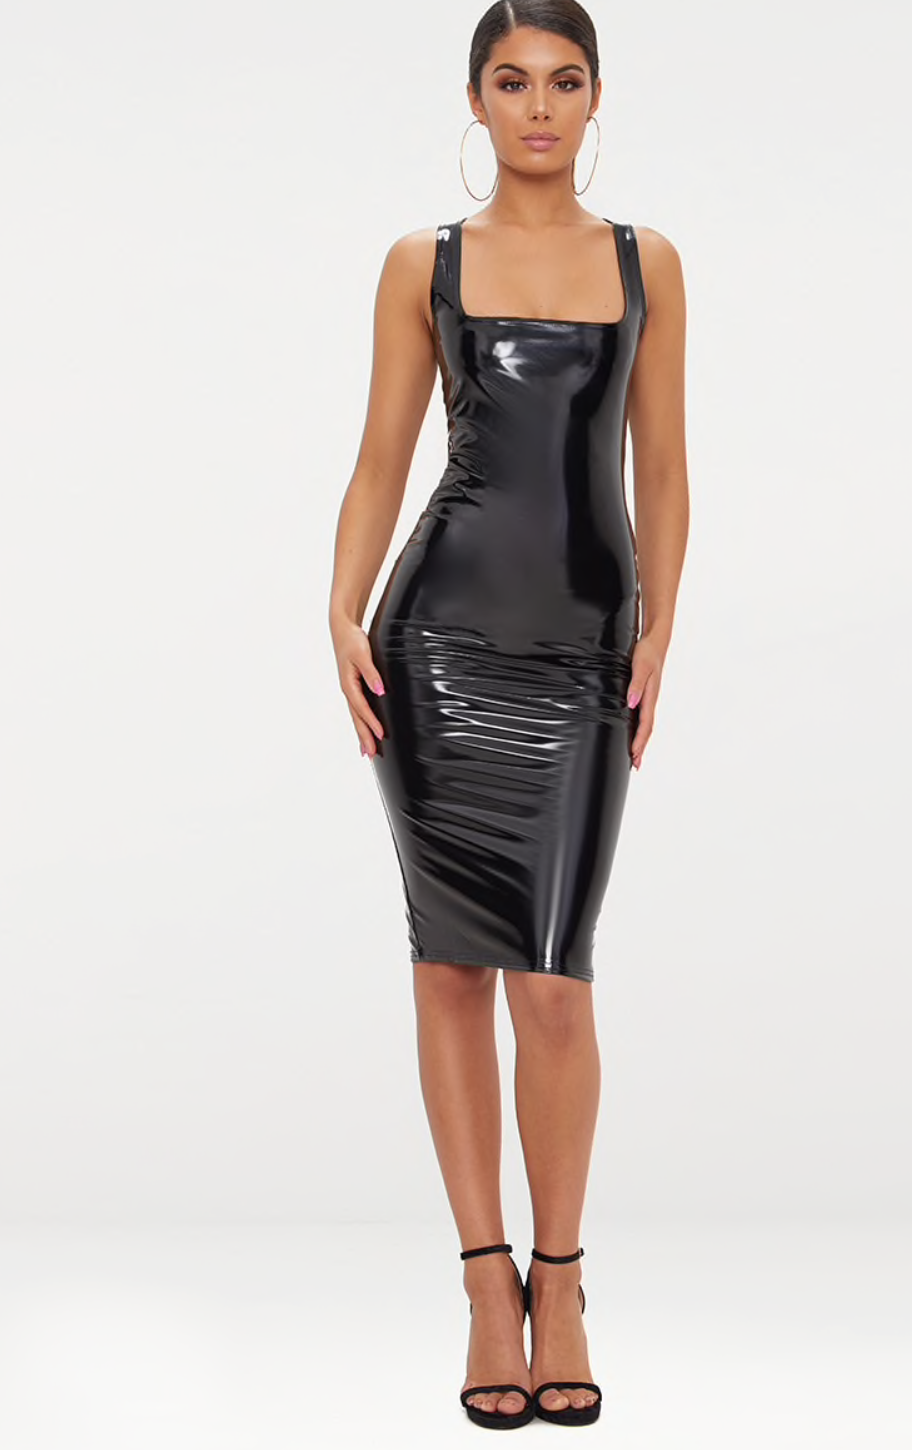 5. the midi dress - PRETTY LITTLE THING: Black Vinyl Square Neck Midi Dress, £20Channel Kim K in this figure hugging black vinyl dress. Pair with skinny stiletto heels and minimal accessories to keep the dress as the focus.